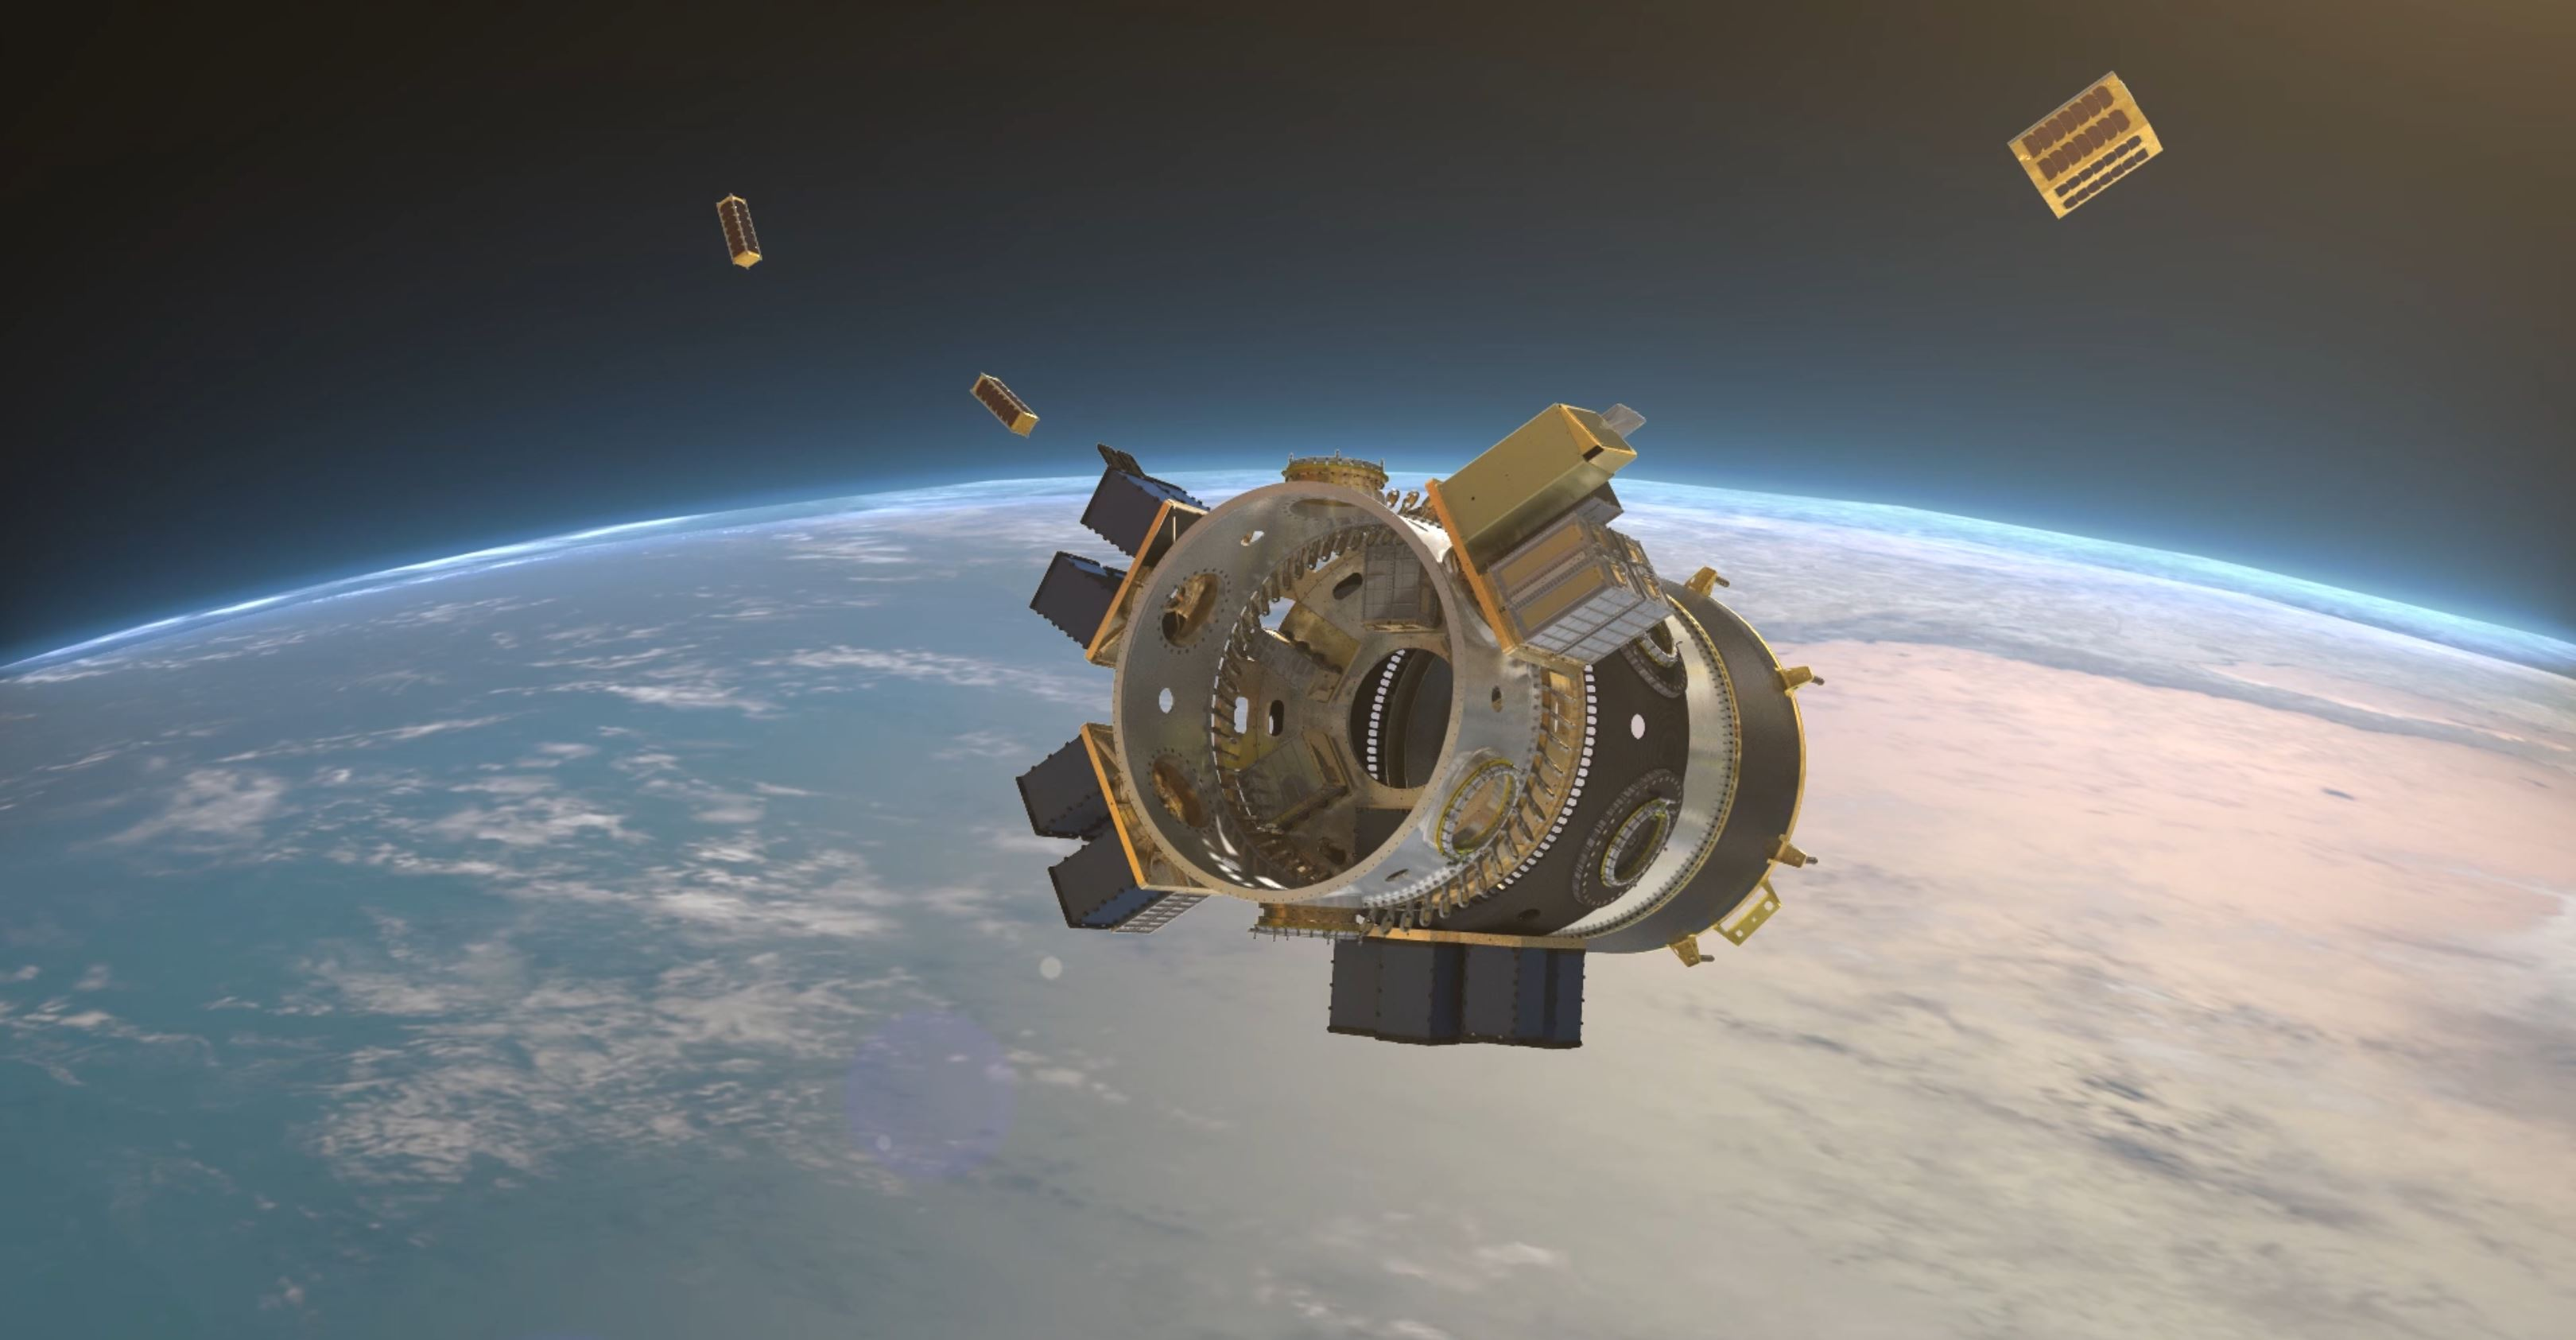 SSO-A Upper Free Flyer cubesat deploy (Spaceflight)